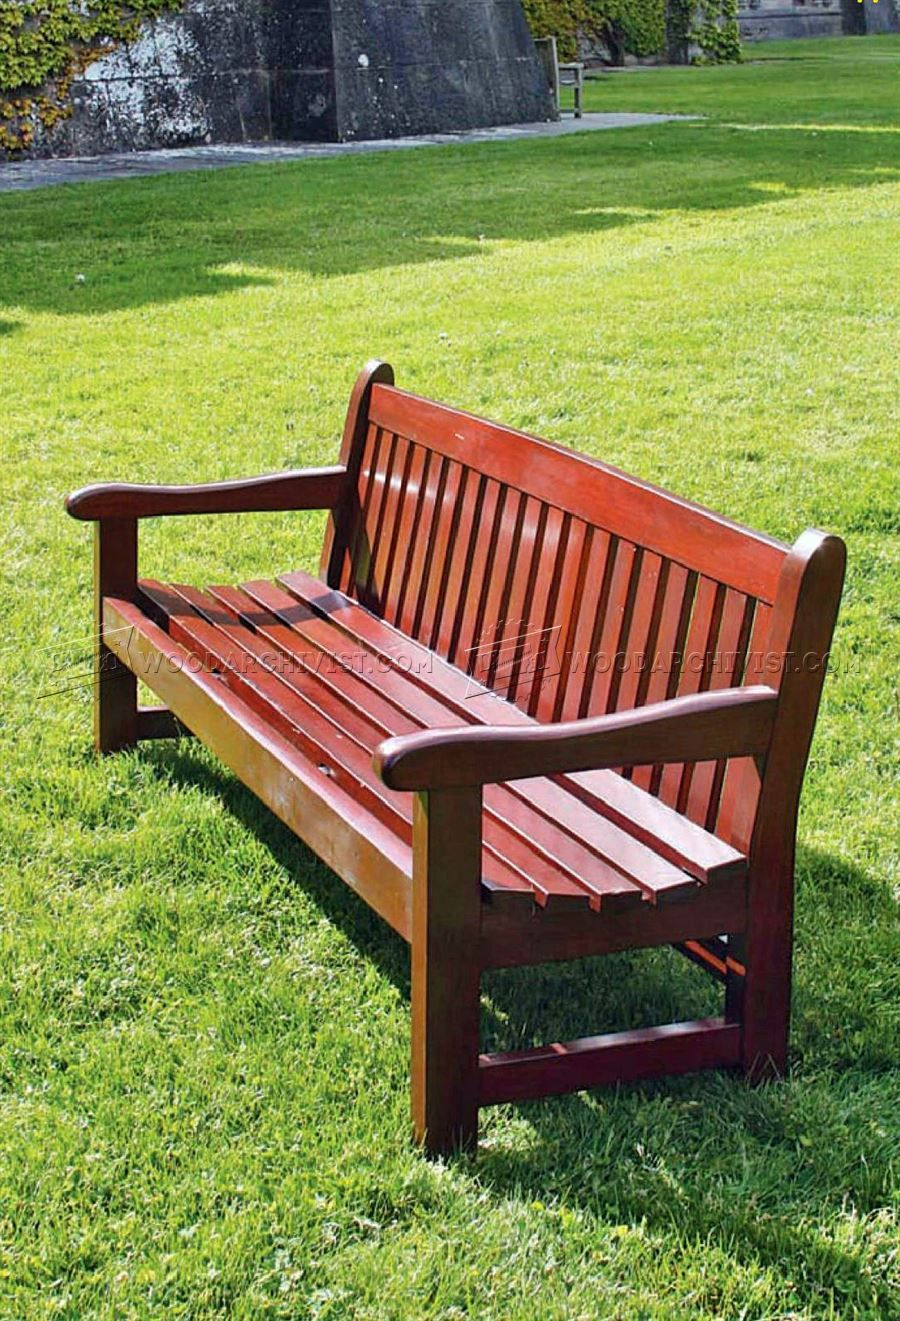 garden bench plans - outdoor furniture plans | only